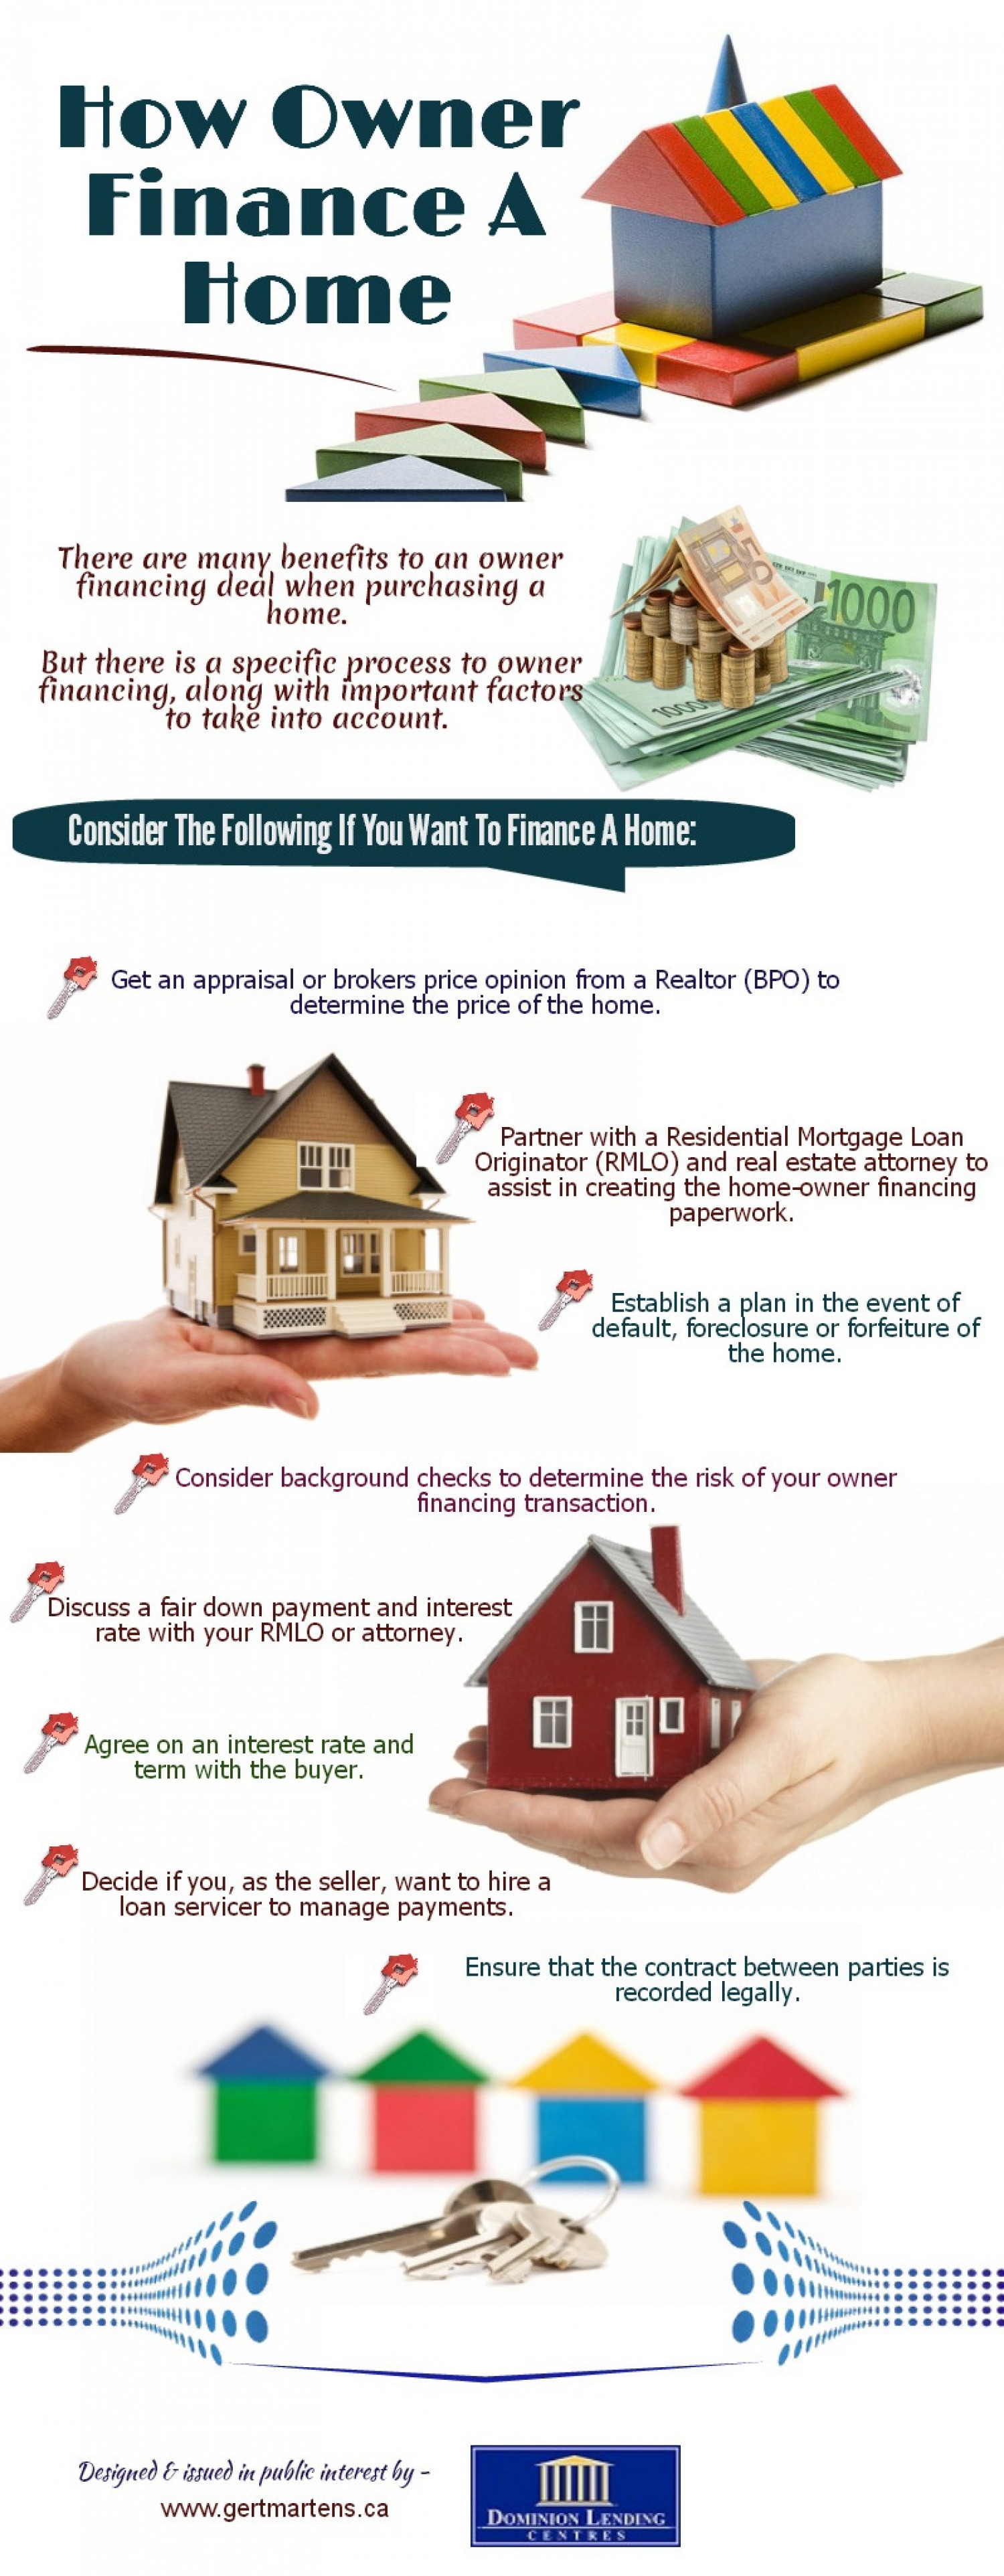 How Owner Finance A Homegraphic